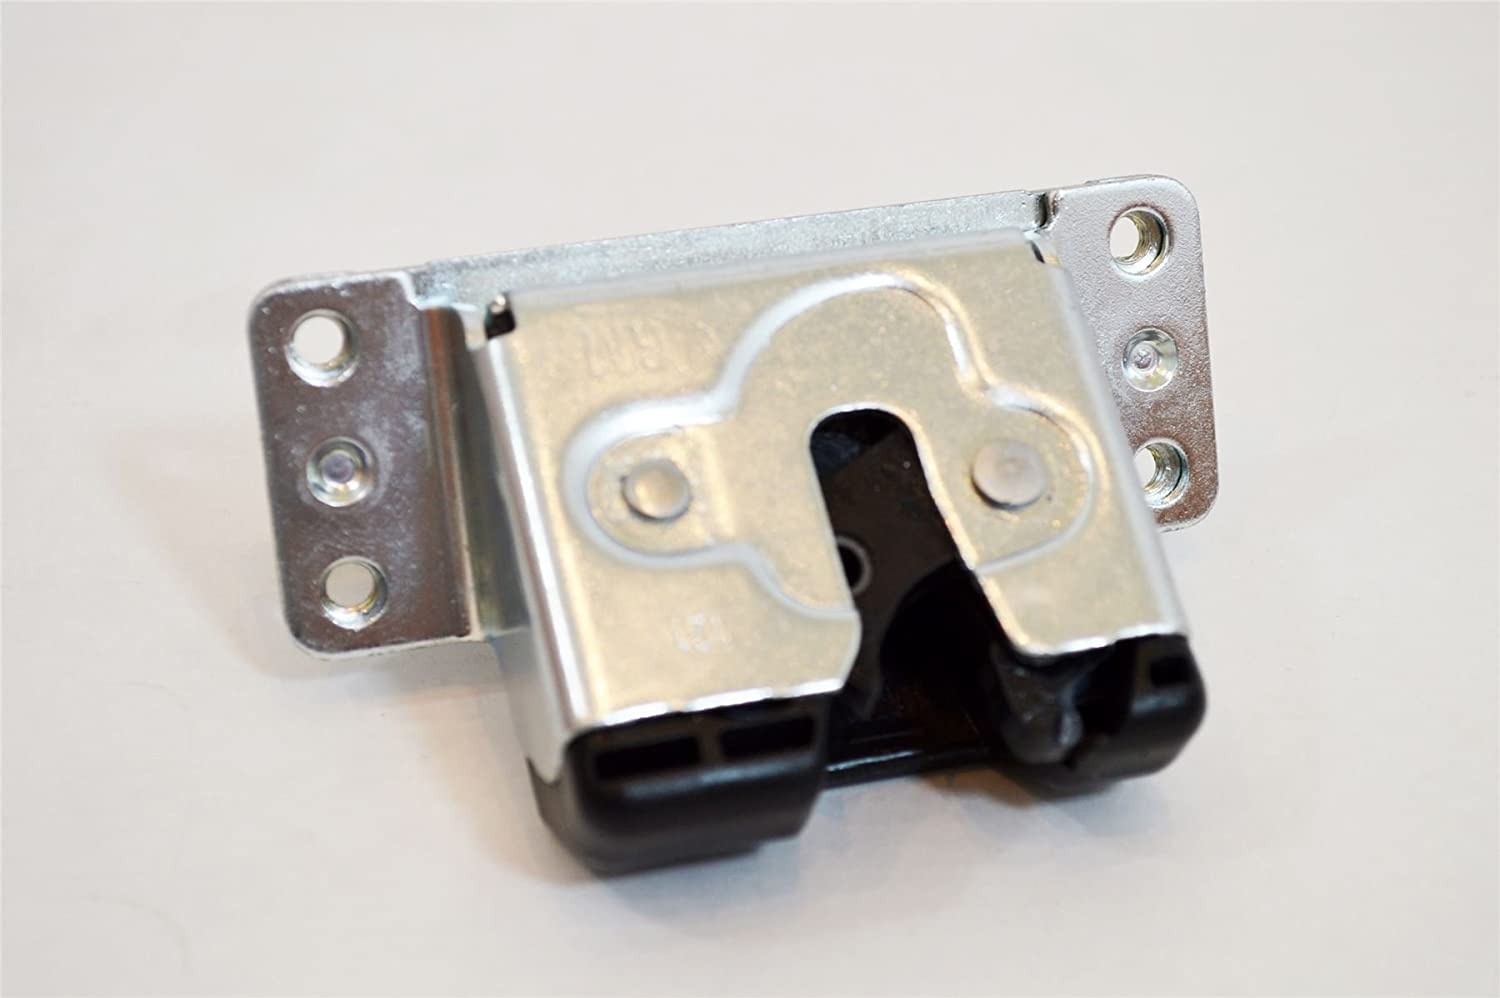 93458109 GENUINE TAILGATE//BOOT LOCK ASSEMBLY//LOCKING MECHANISM New from LSC